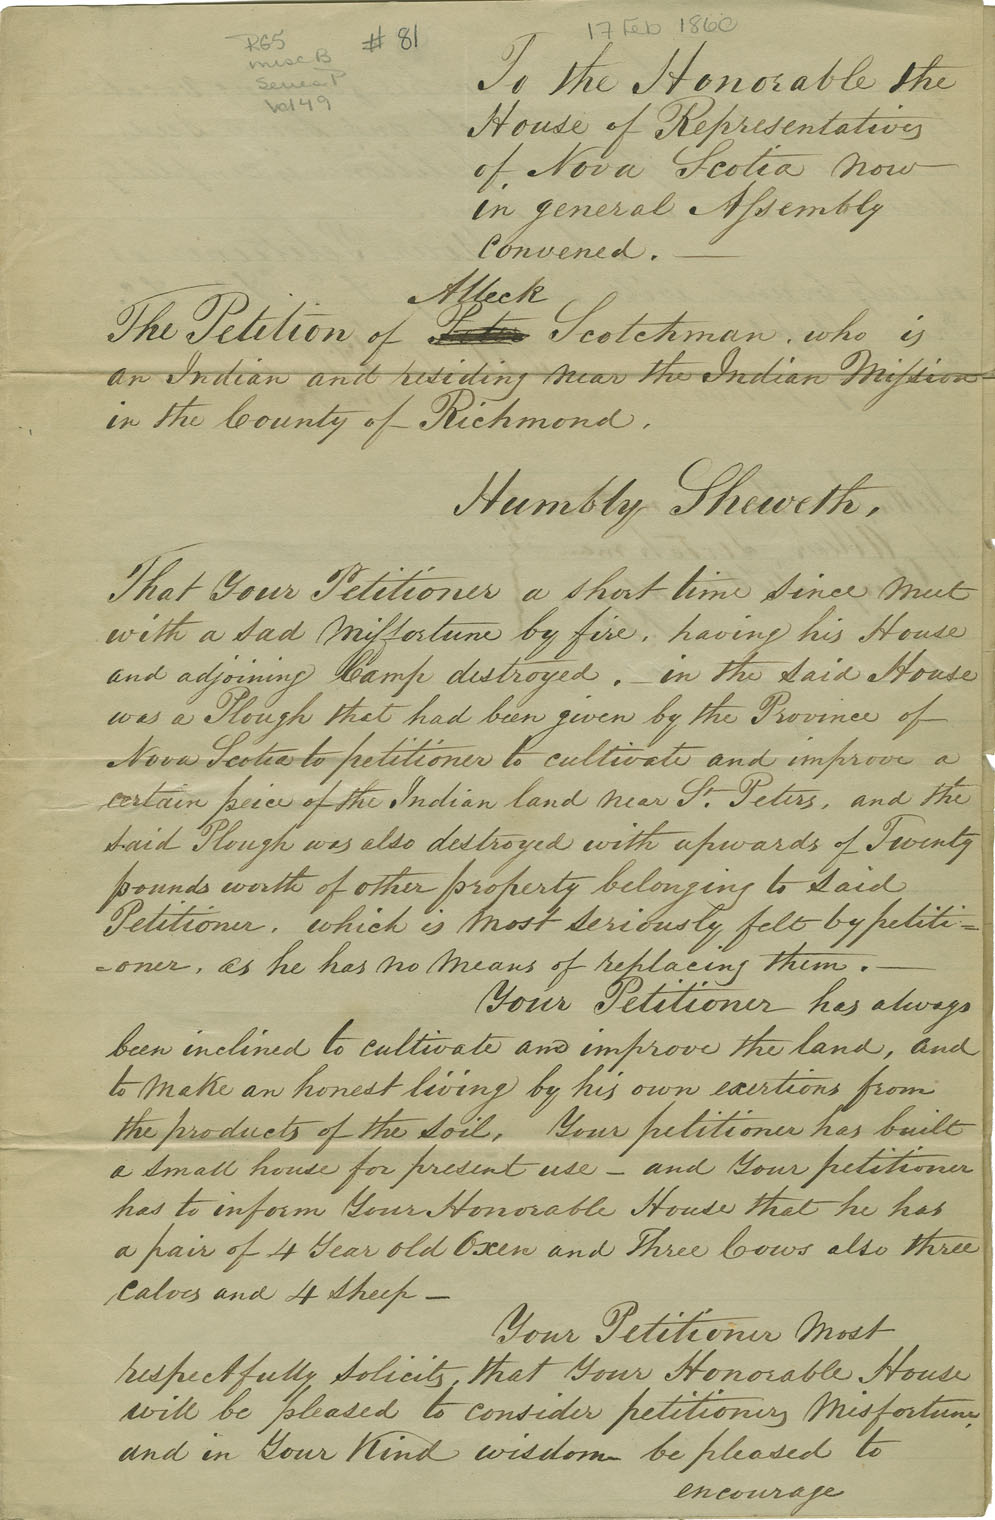 Petition of Aleck Scotchman, a Mi'kmaq, residing near the Indian Mission at Richmond County, asking that he be given compensation to replace goods lost in a fire.